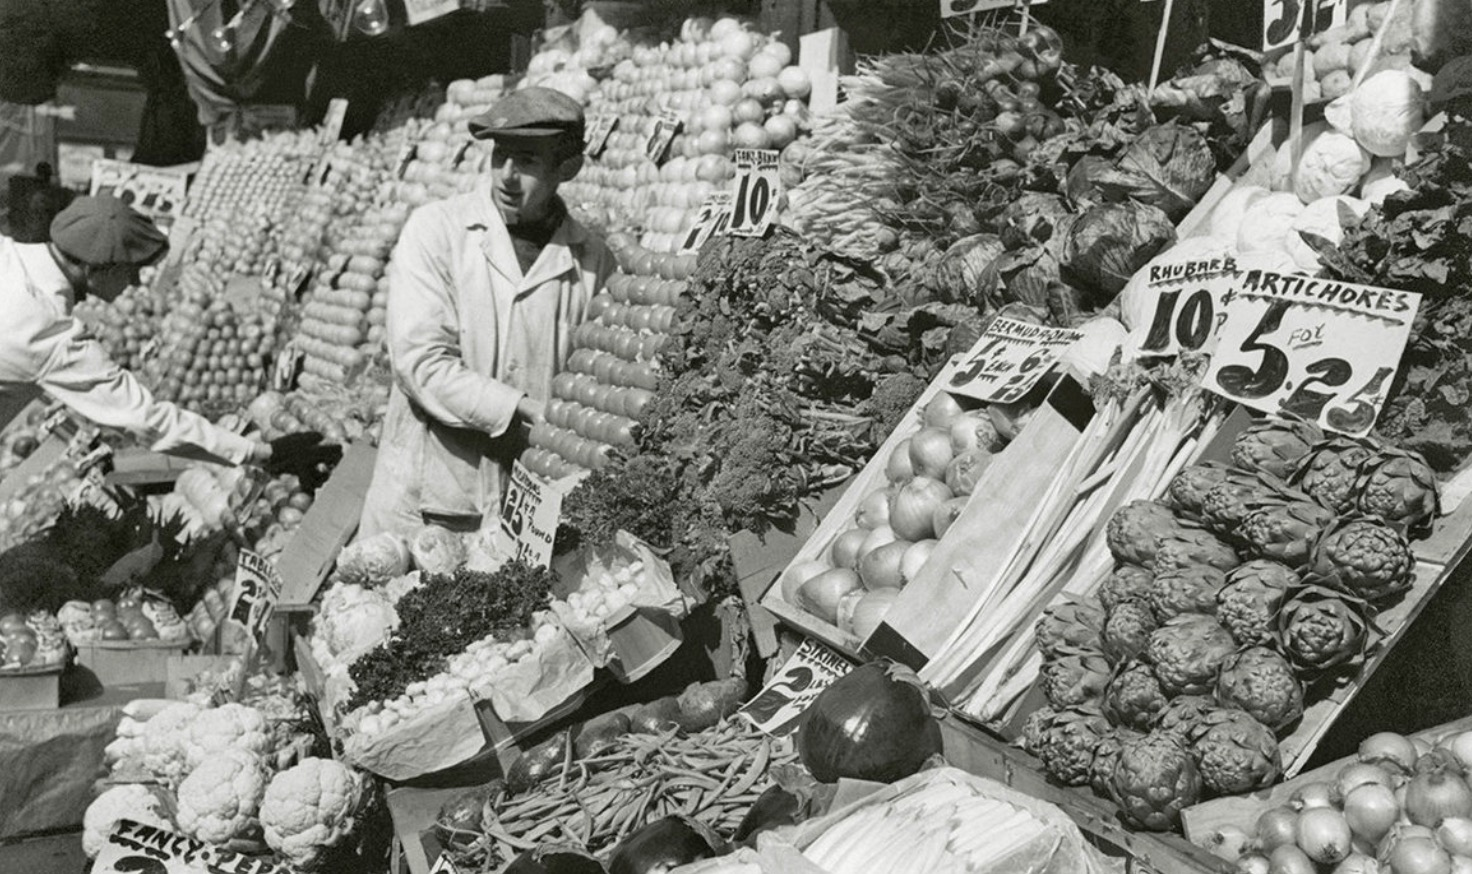 In 1930s New York, The Mayor Took On The Mafia By Banning Artichokes